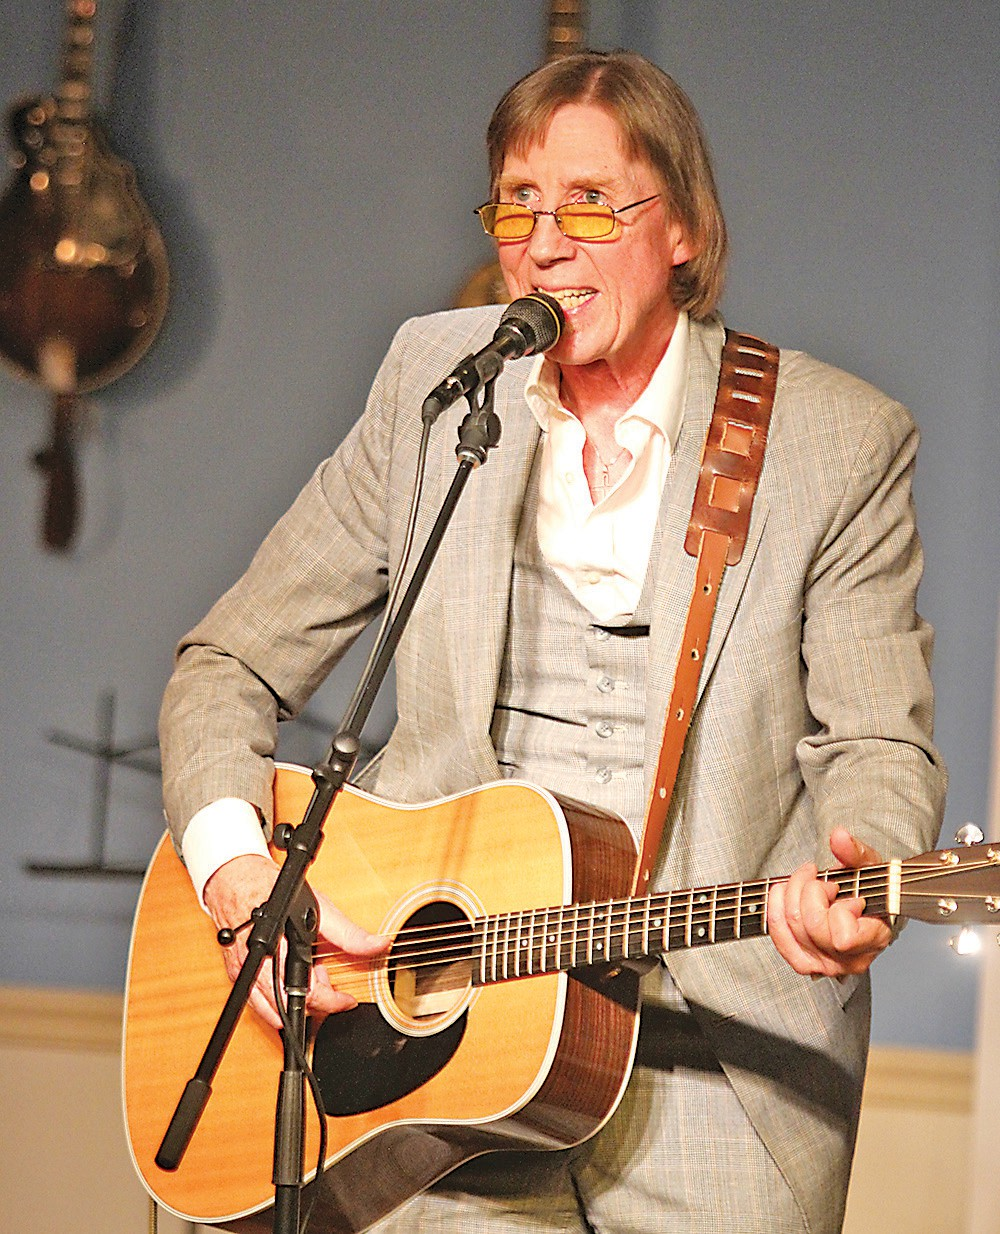 Austin Church, who performed in the Florida Songwriter Showcase, has written songs for Jimmy Buffett and Lyle Lovett.